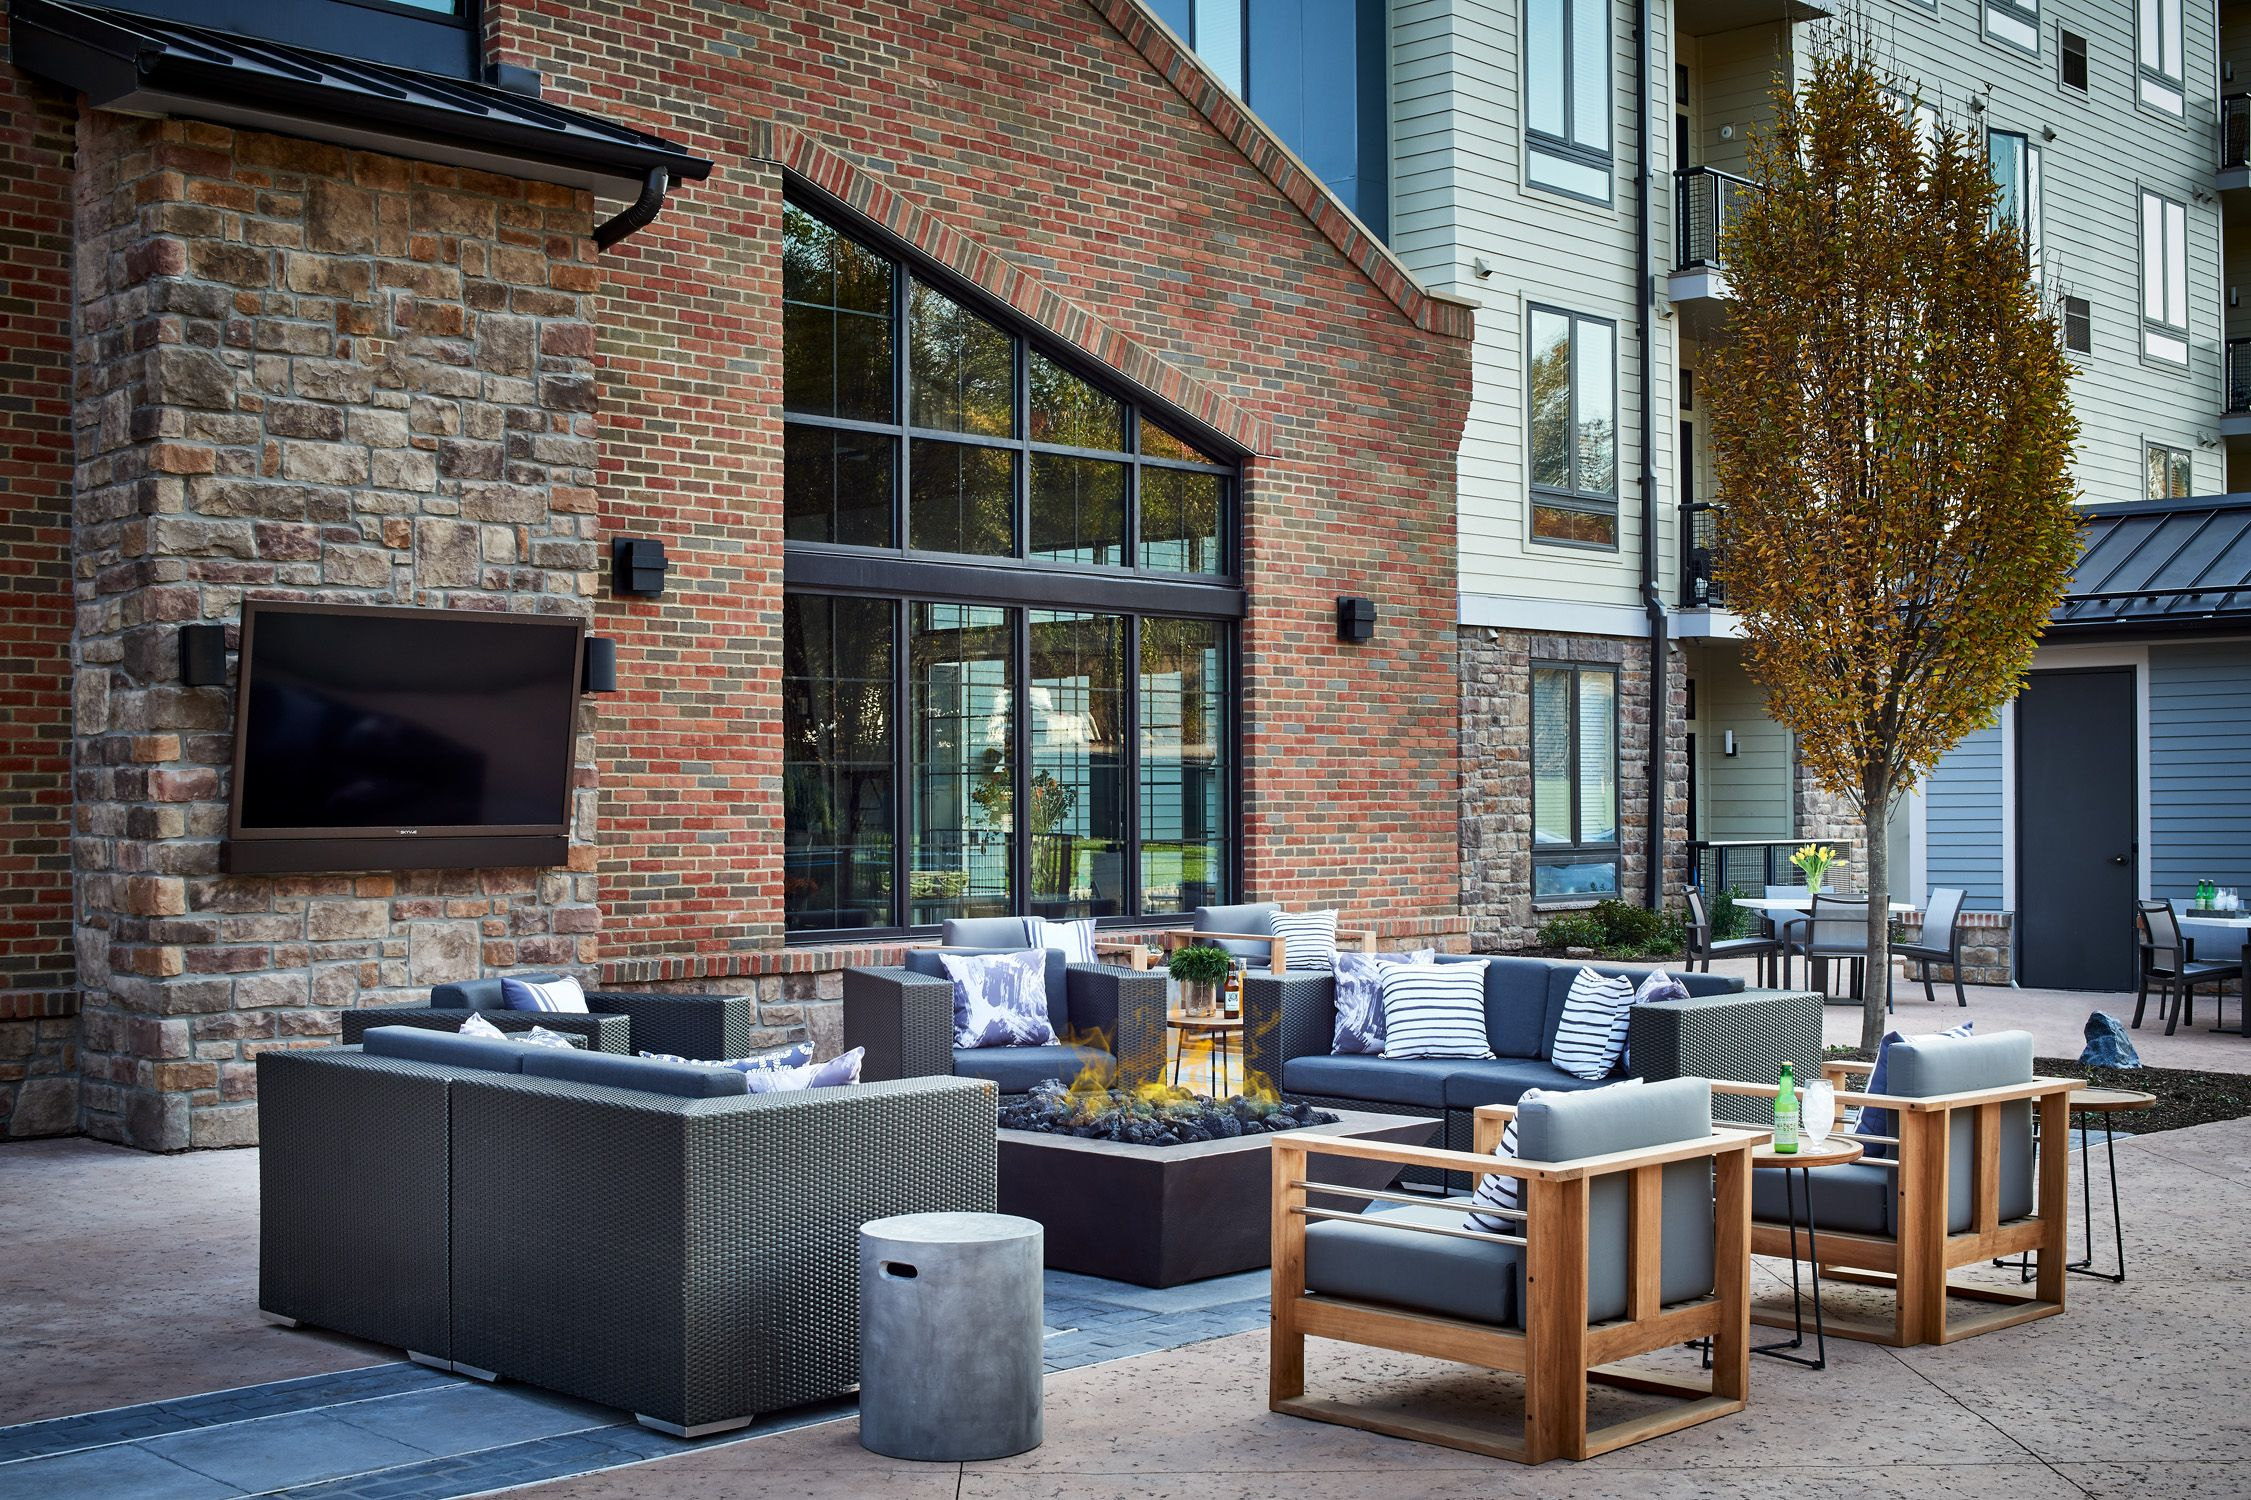 Pin by Toll Brothers Apartment Living on Riverworks ... on Riverworks Outdoor Living id=44412